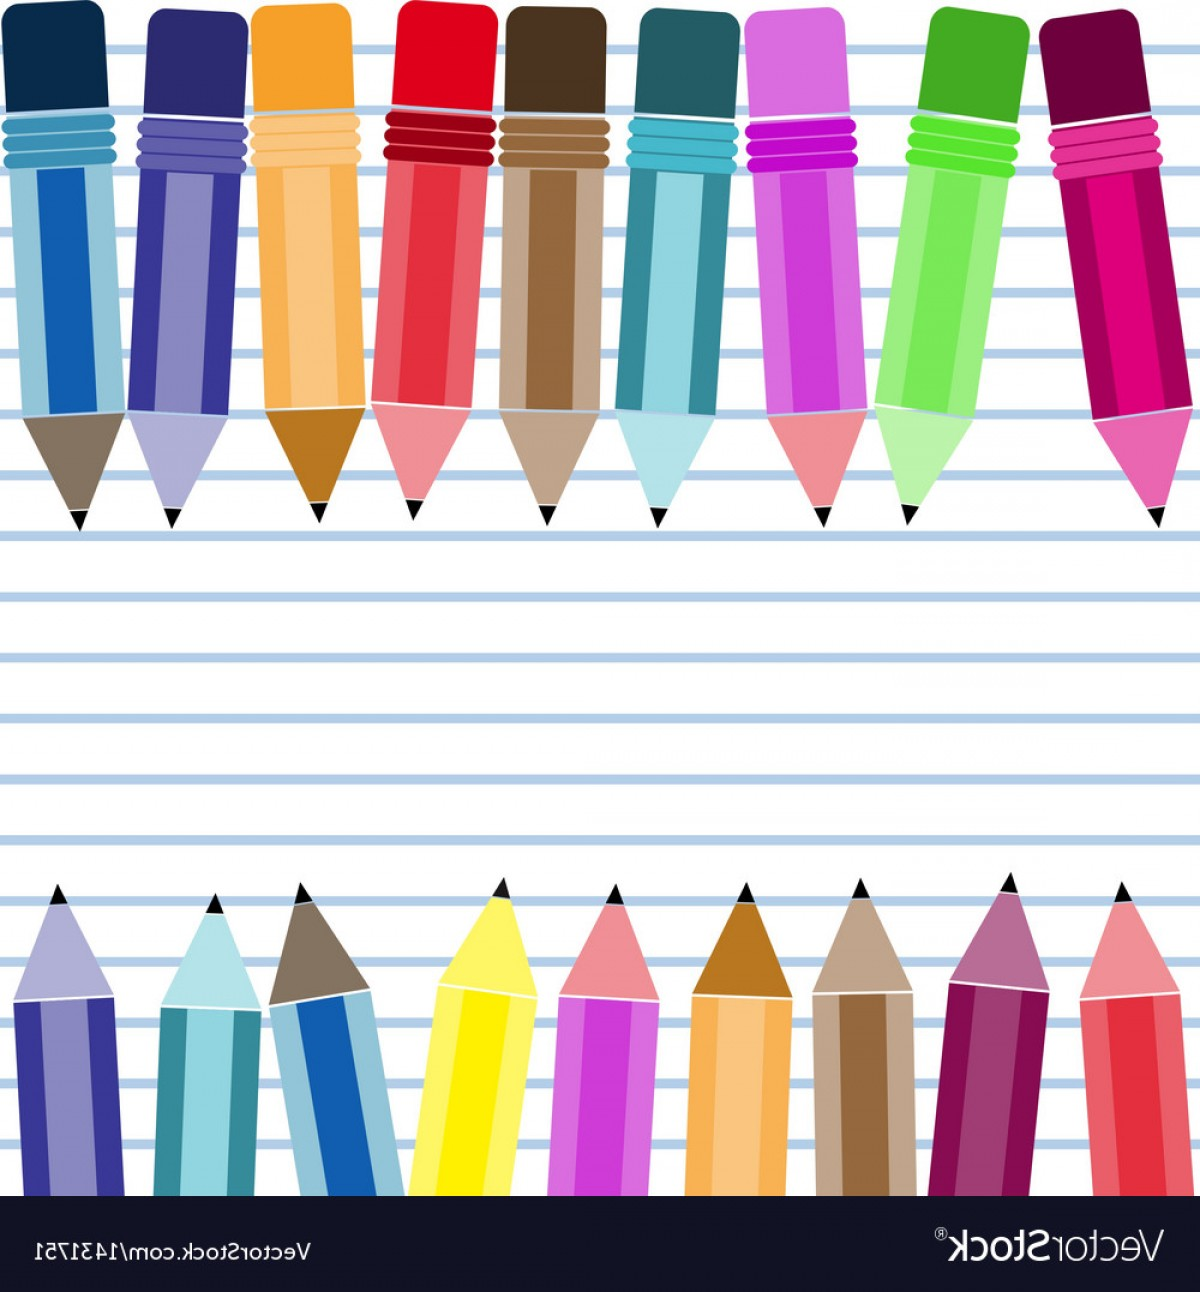 Pencil Icon Vectors Social Media: Social Network Background With Media Icons Vector